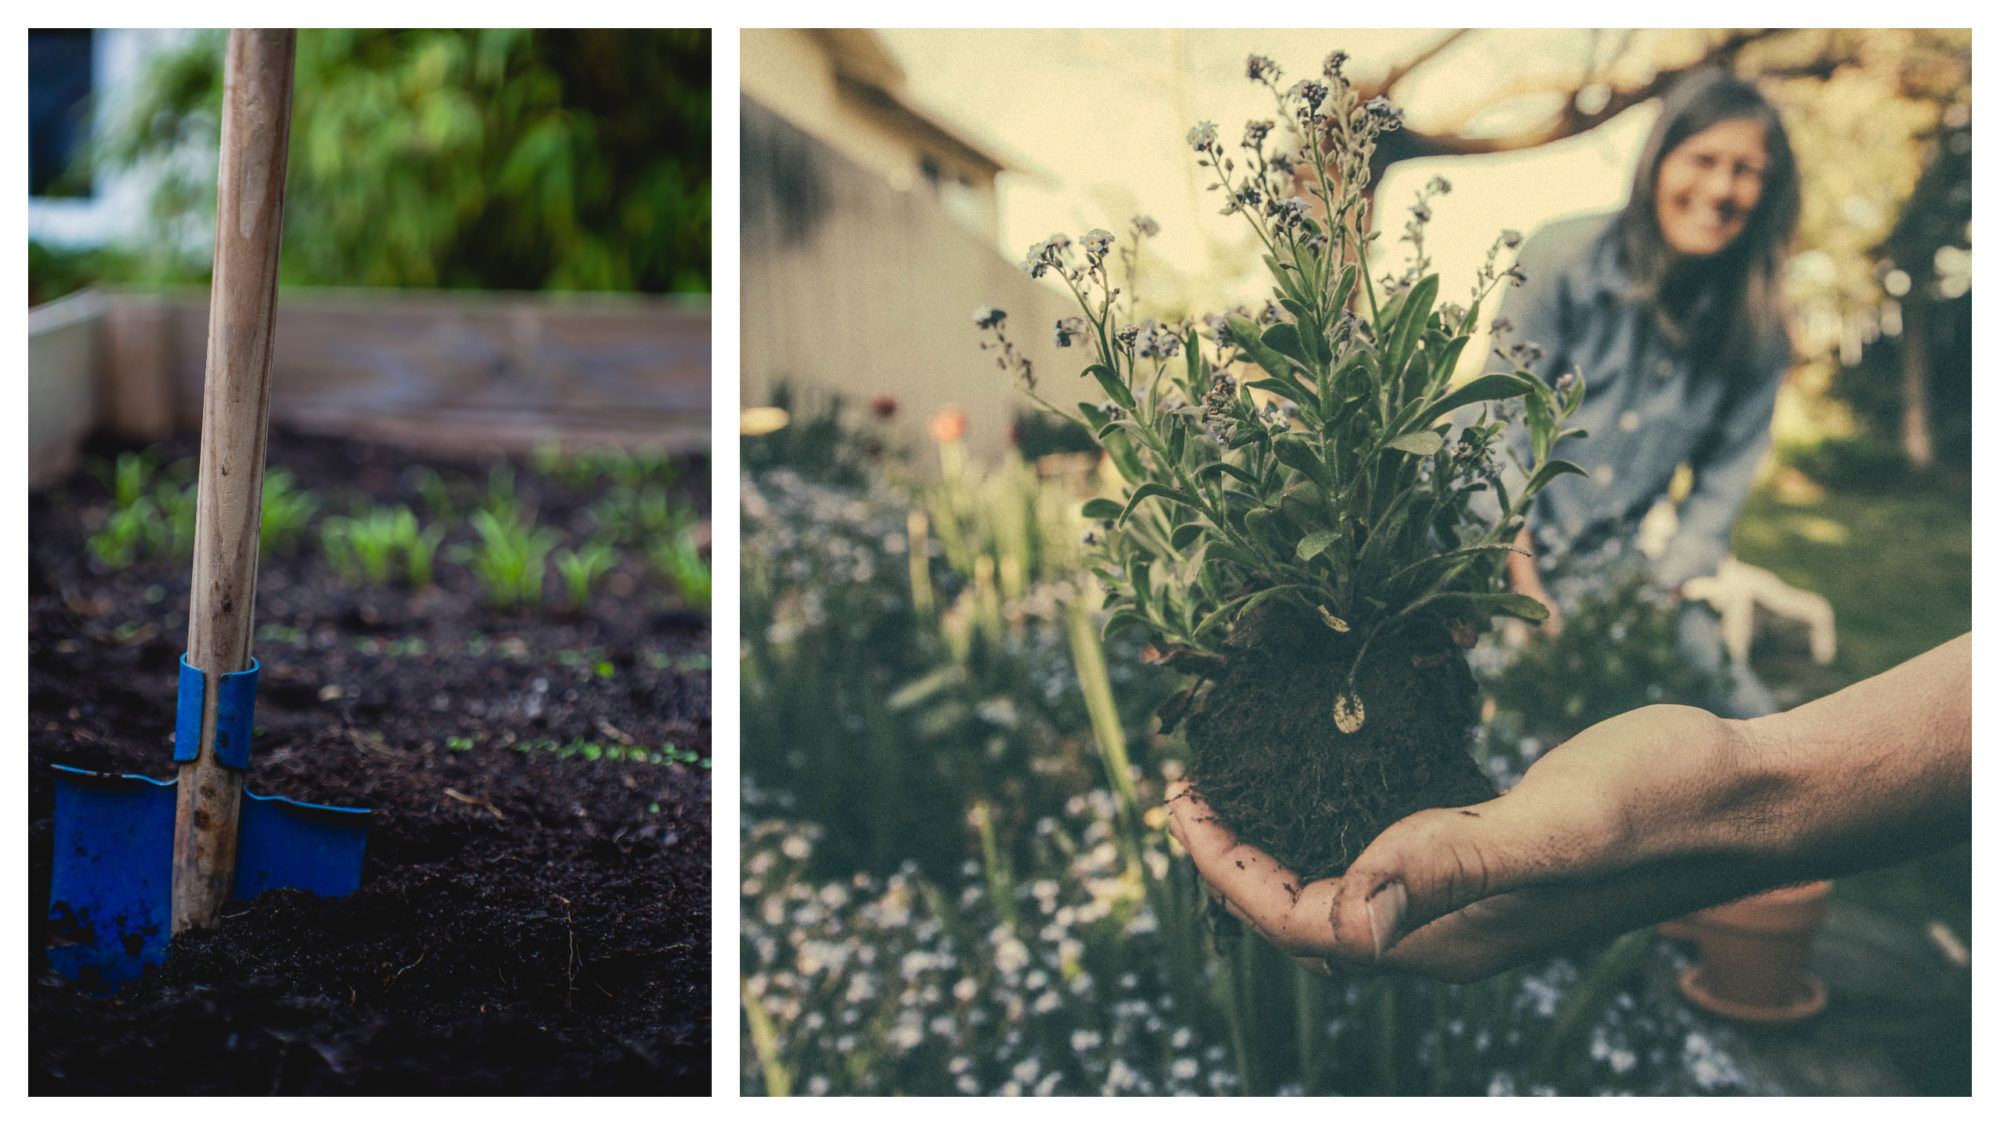 A blue shovel sticking out from a vegetable patch (left). Beautiful flower bulbs being held by a hand, with a woman smiling in the background (right).